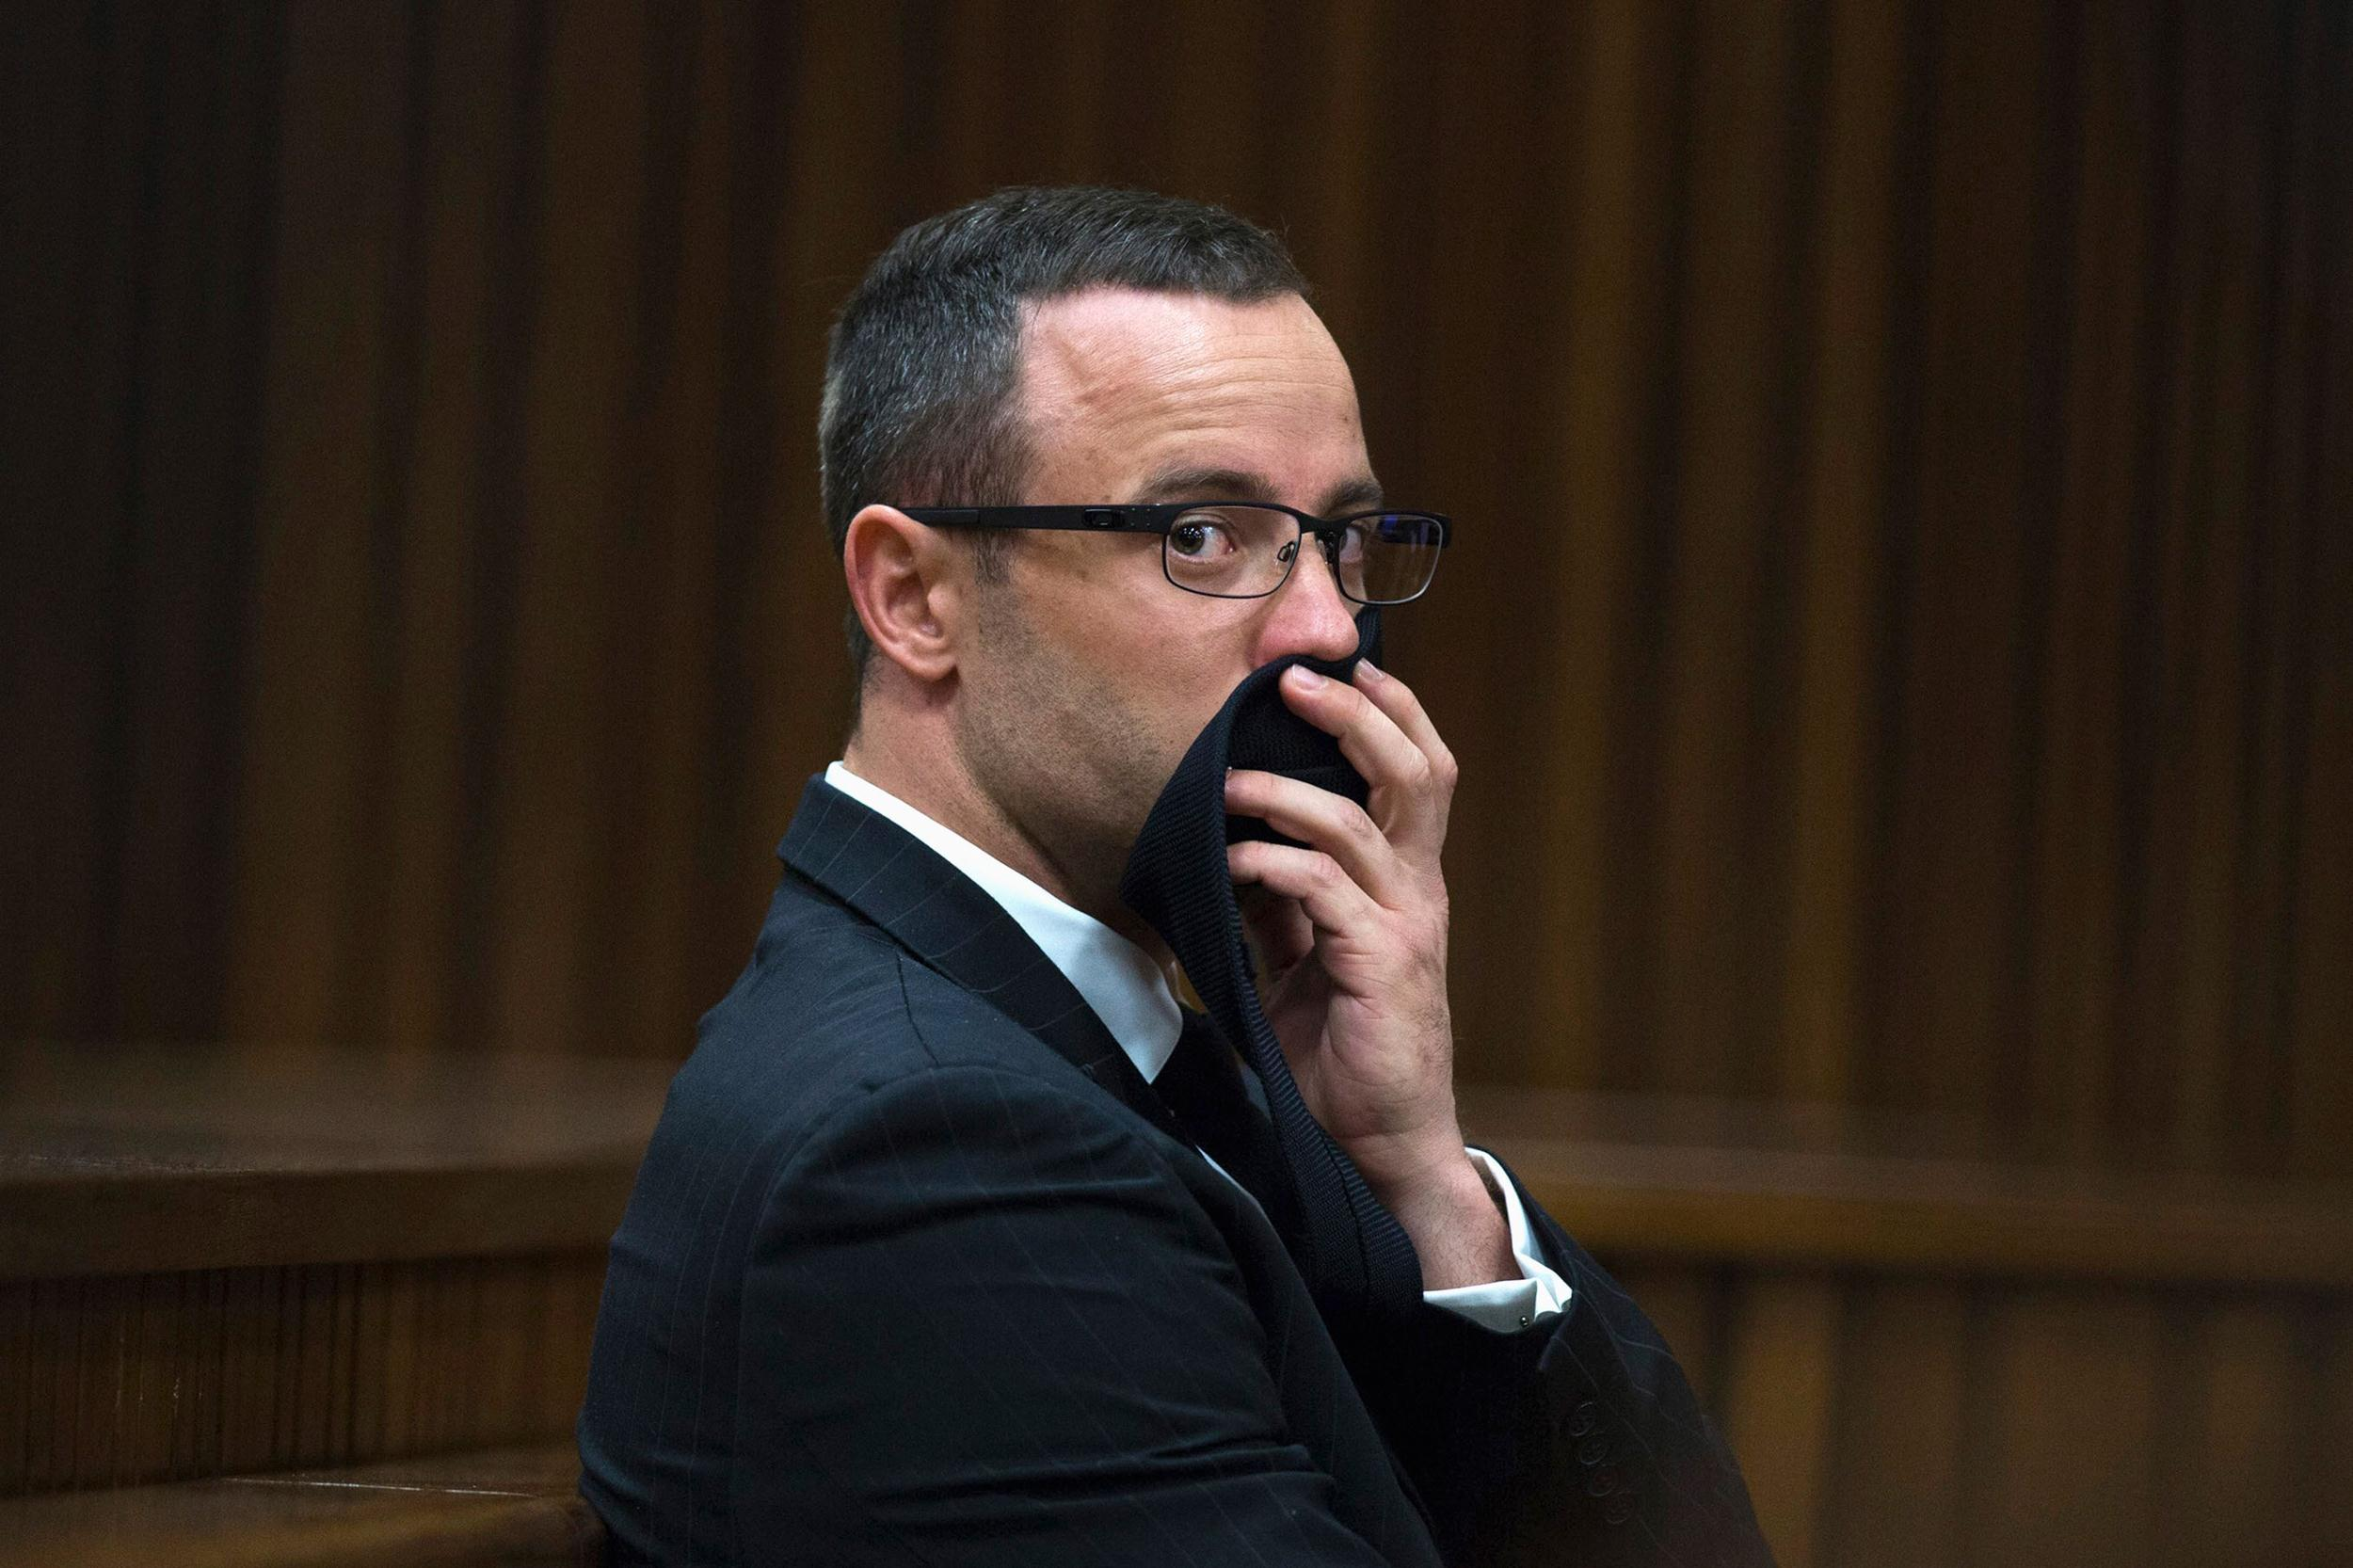 Image: Oscar Pistorius looks on during his trial at the North Gauteng High Court in Pretoria